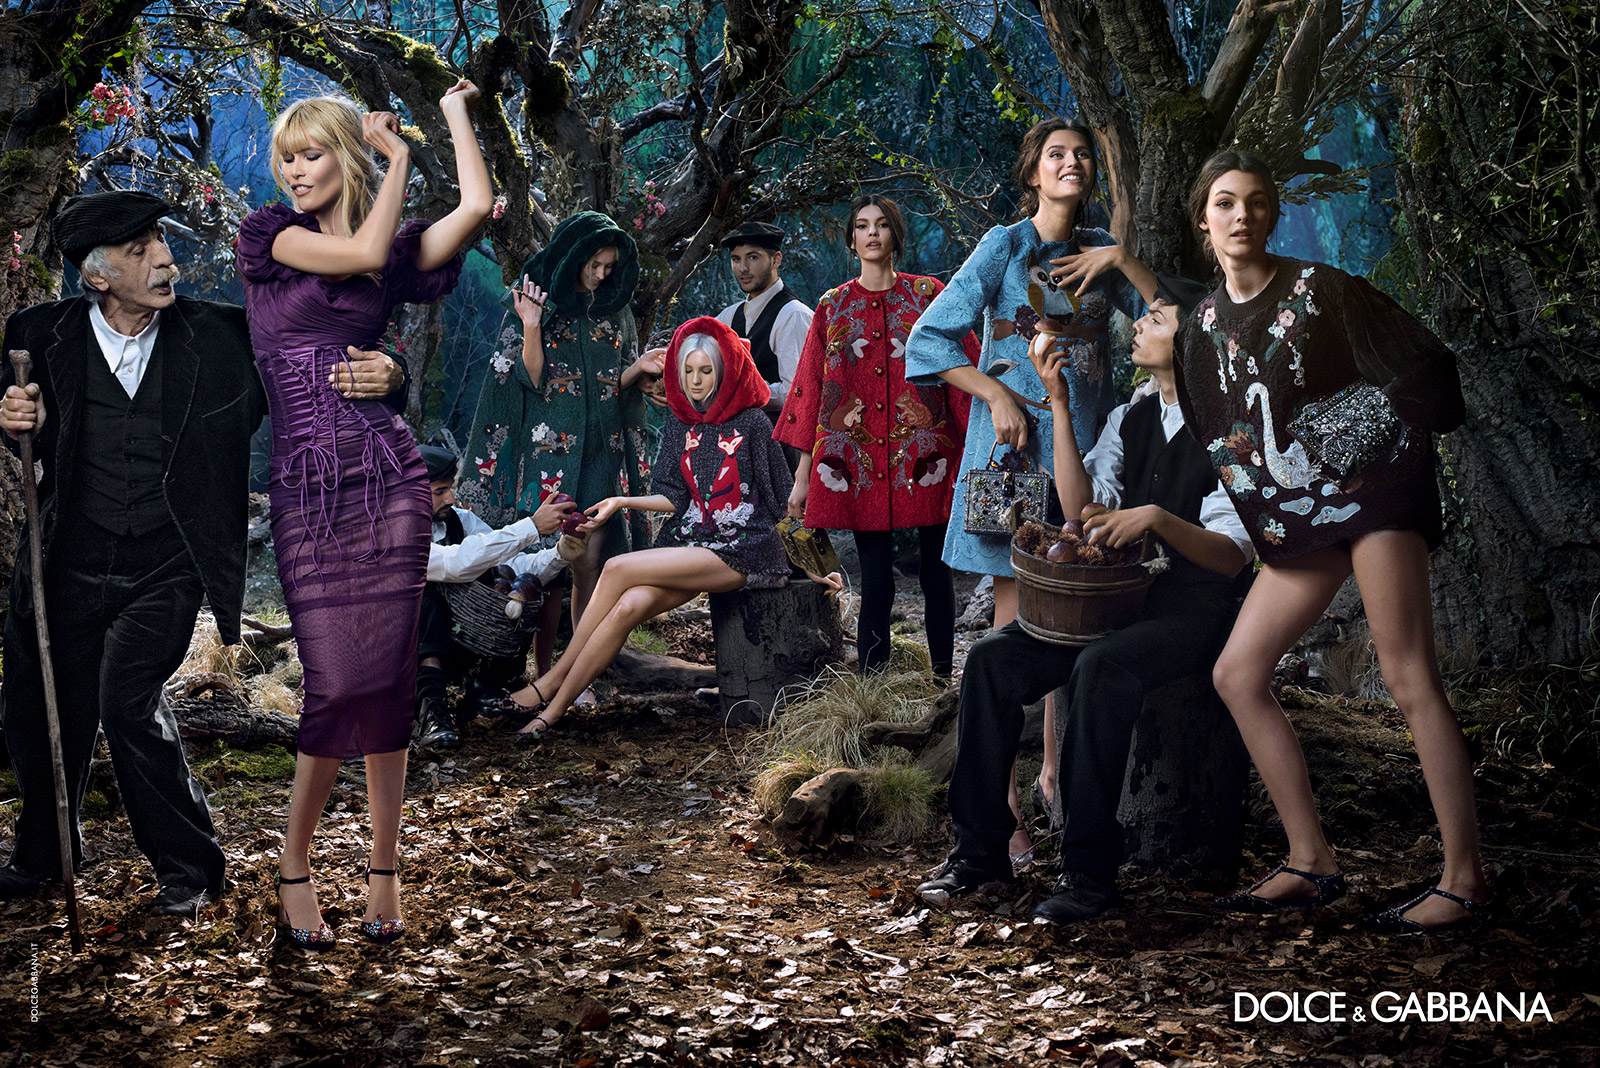 dolce-and-gabbana-winter-2015-women-advertising-campaign-01.jpg